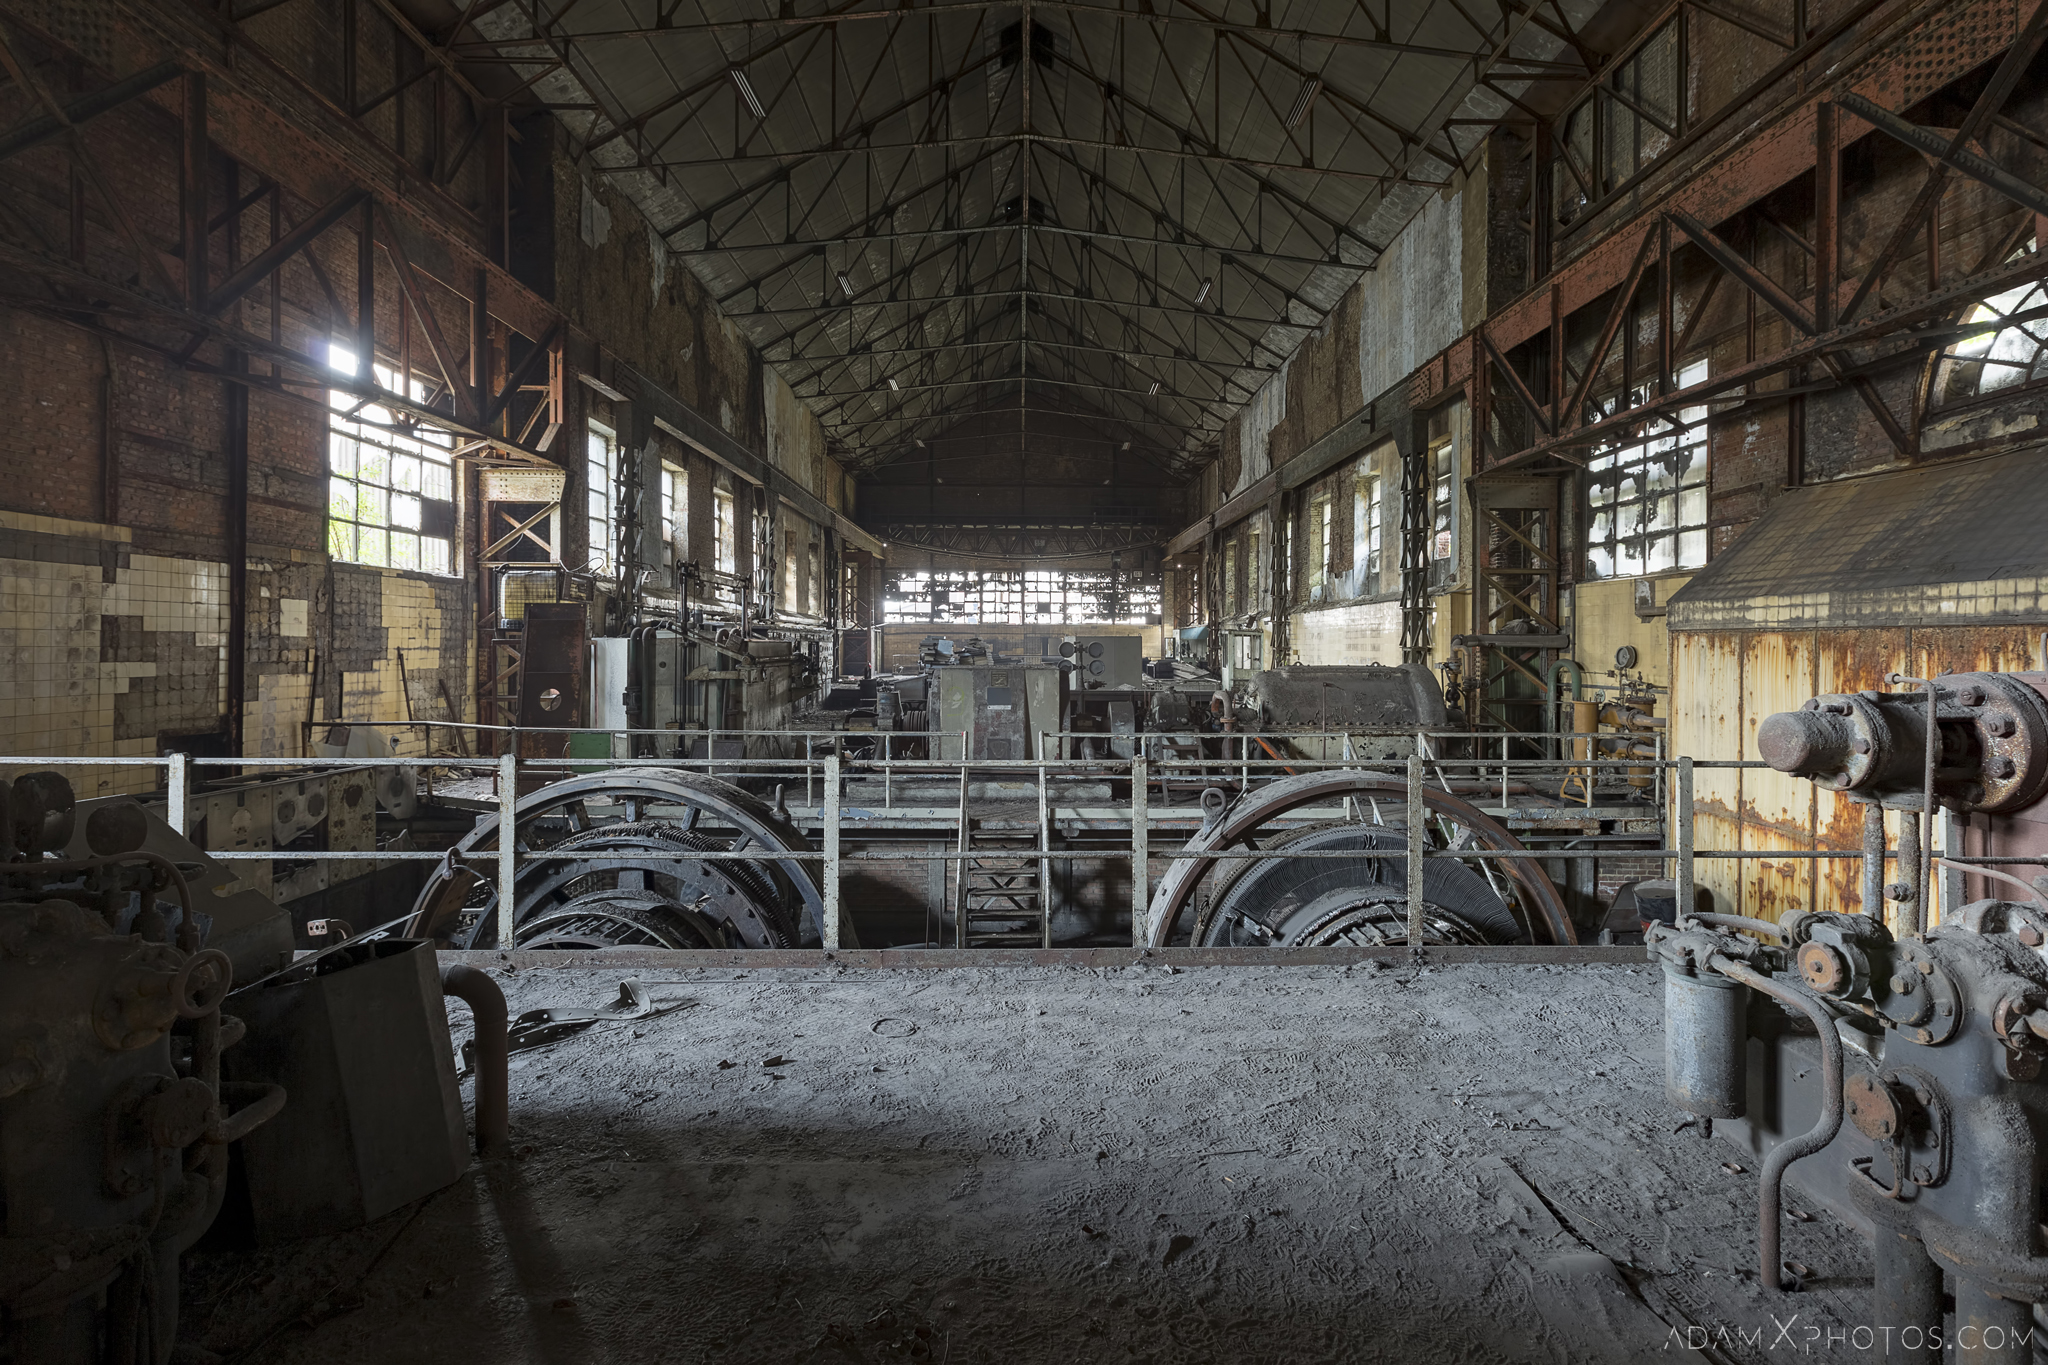 Rotary converters main hall HF4 power plant wet dogs AMEC Industrial Industry Adam X Urban Exploration Belgium Access 2017 Abandoned decay lost forgotten derelict location creepy haunting eerie